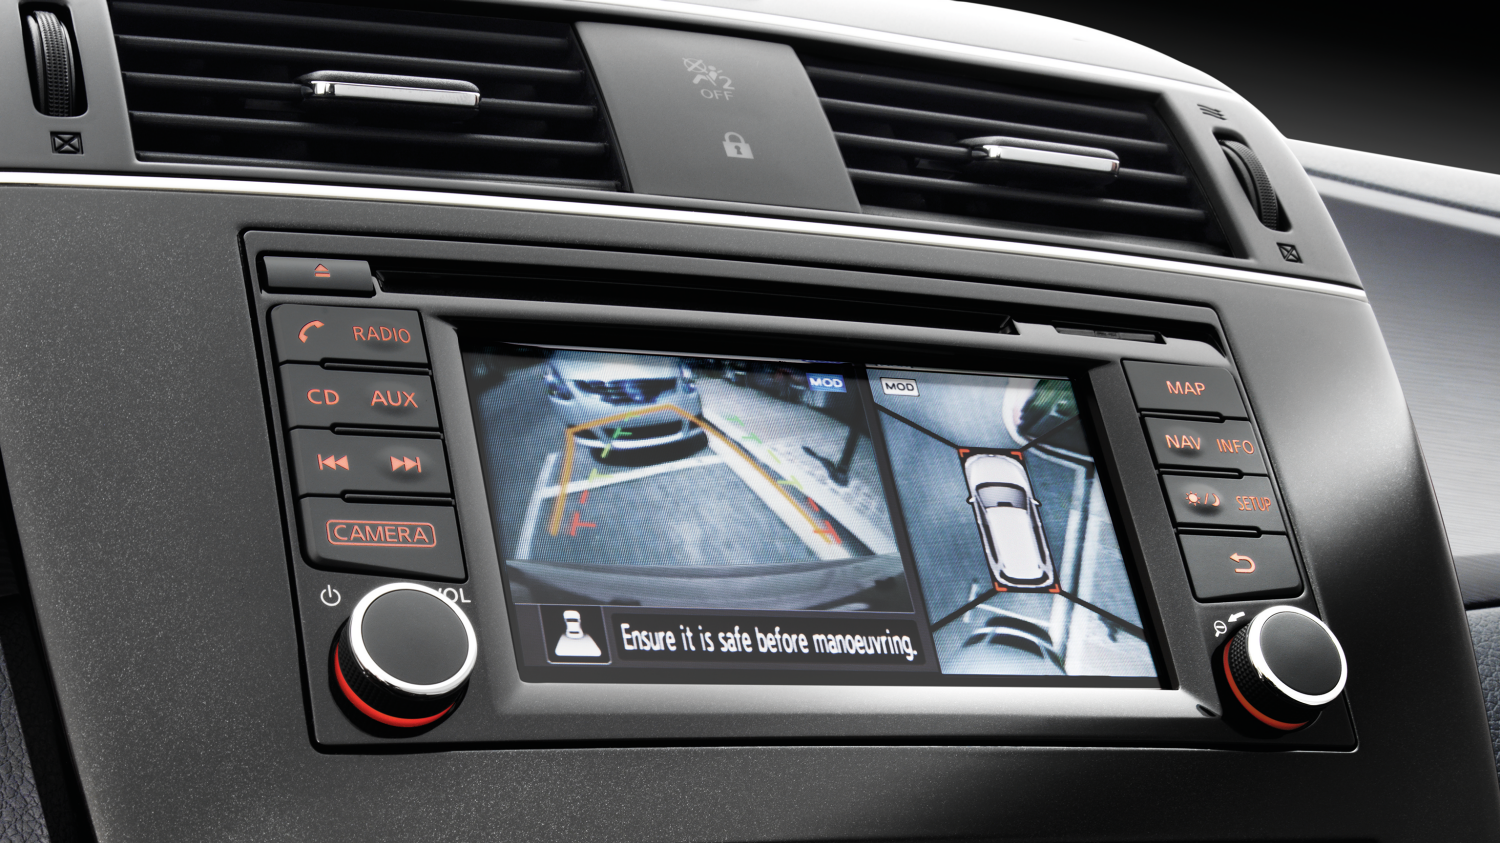 Nissan Pulsar – Hatchback | Around view monitor